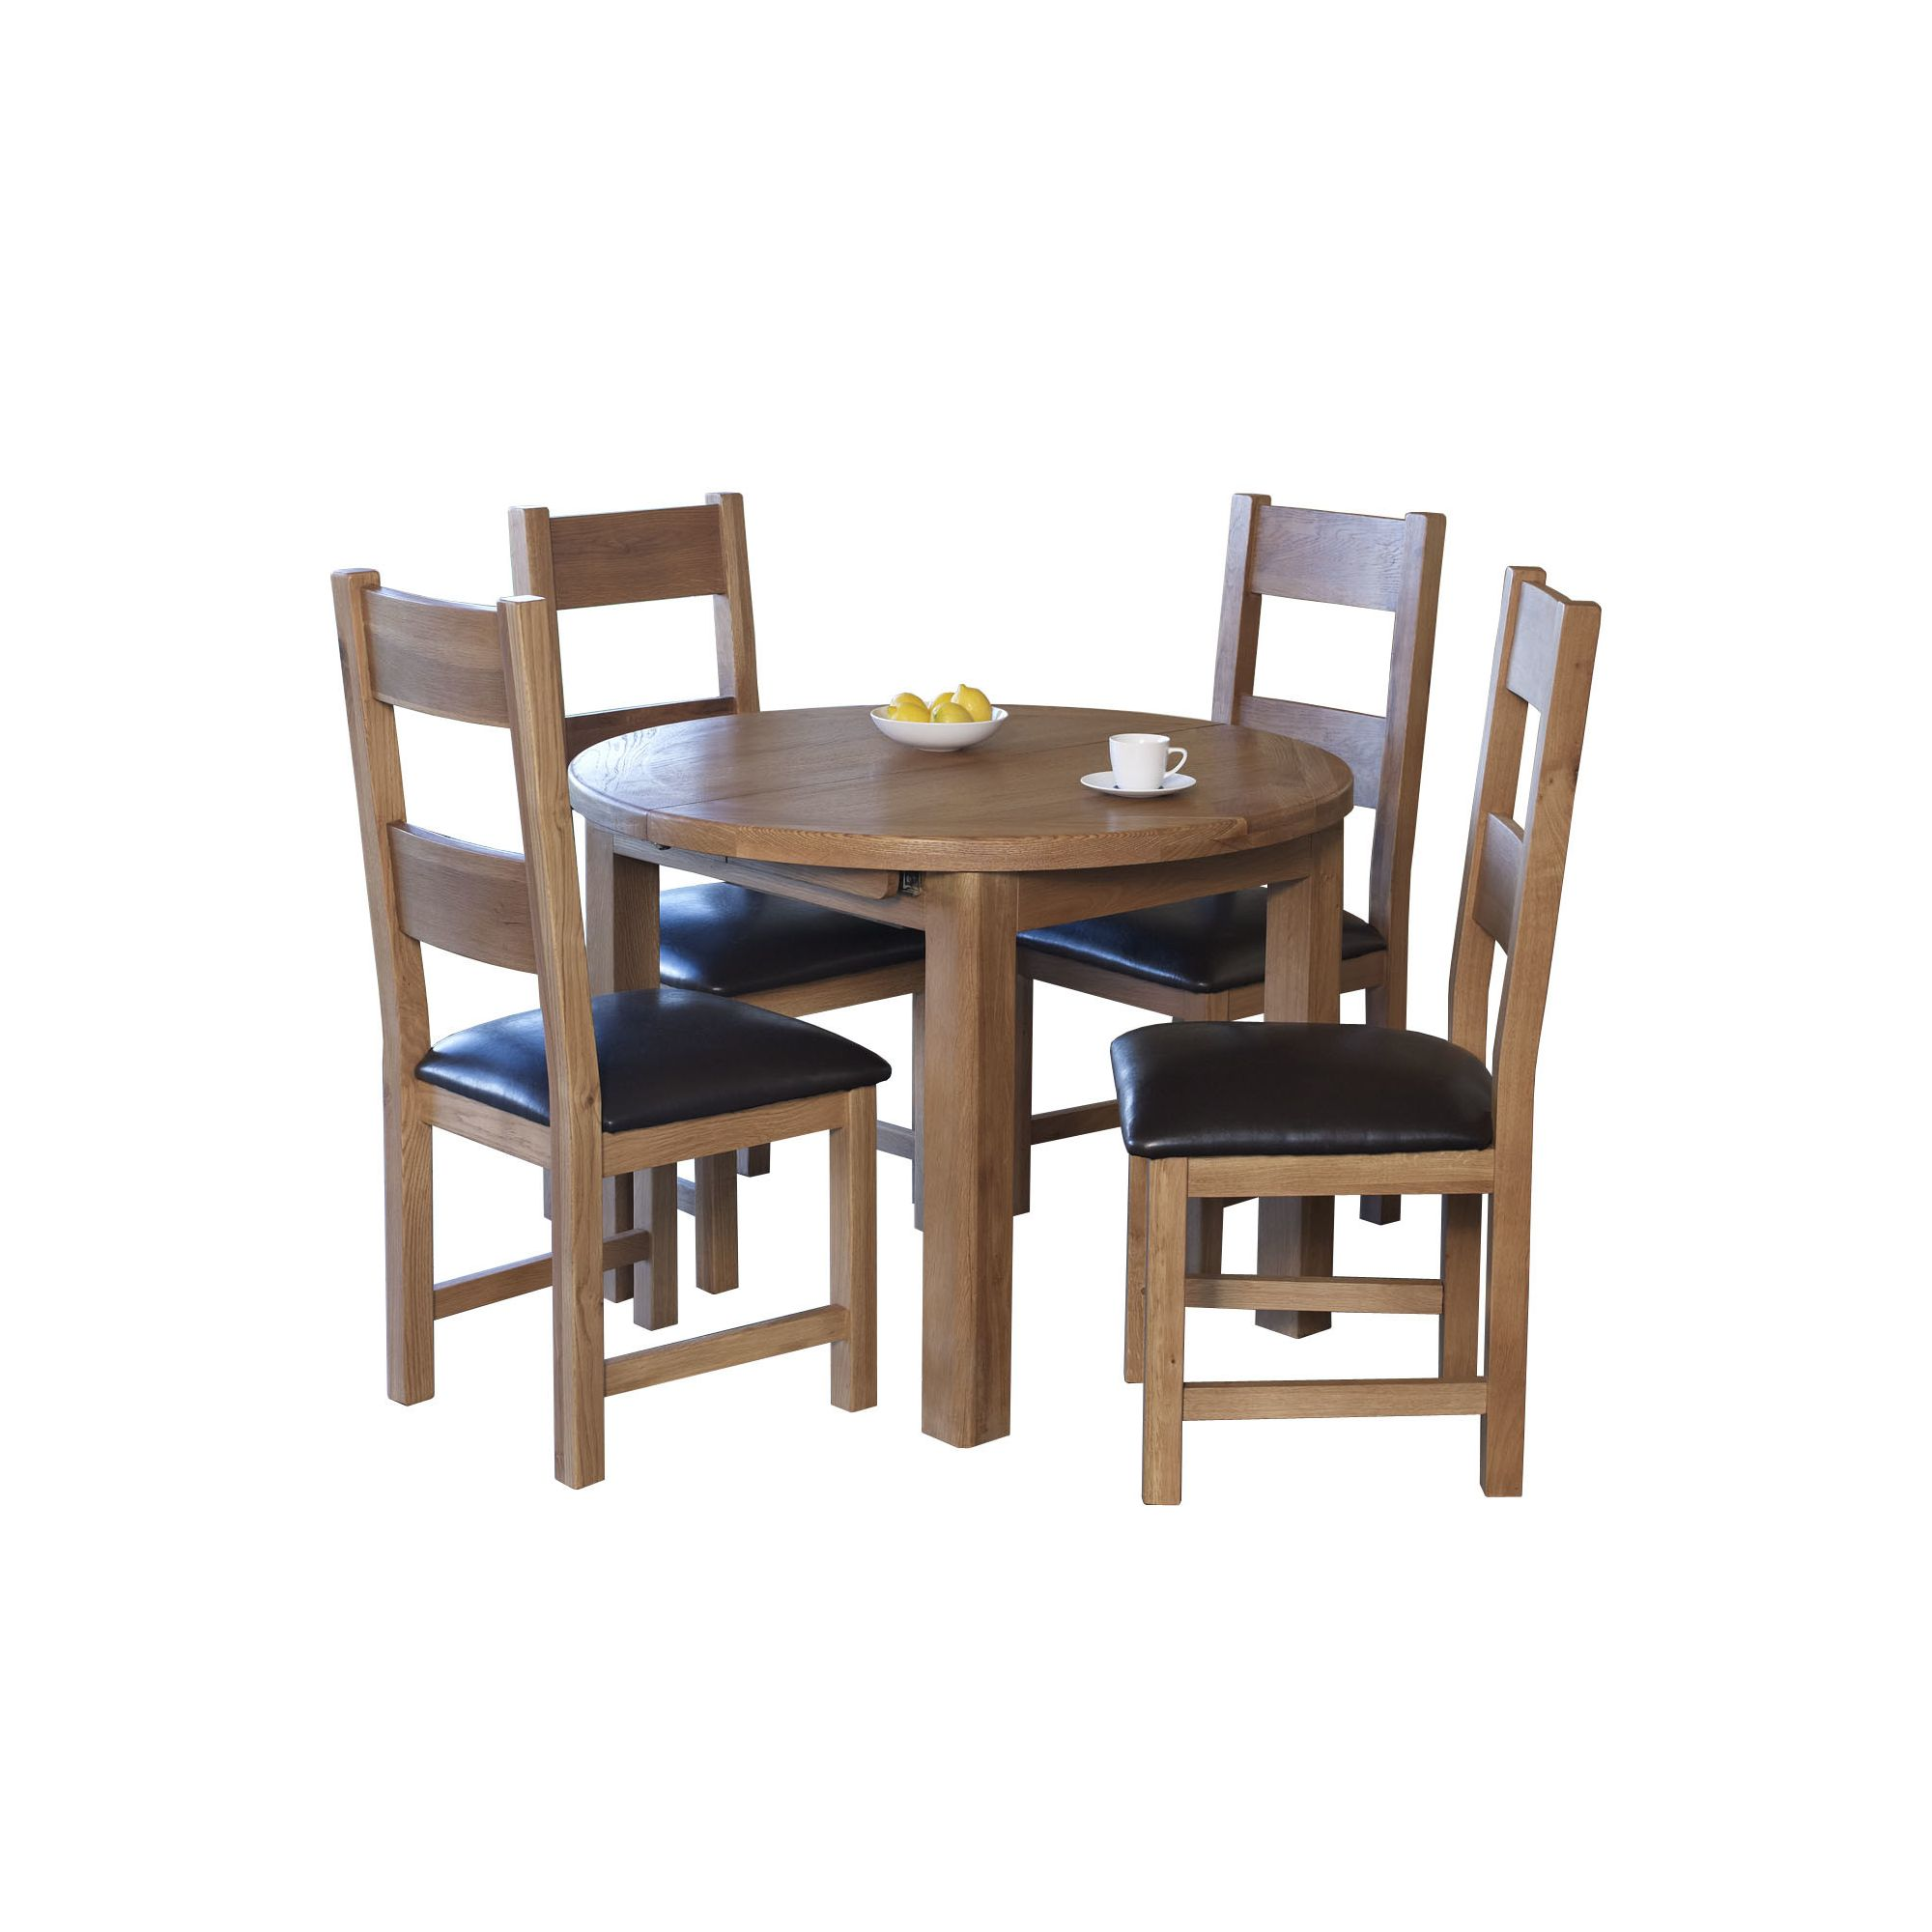 Furniture Link Hampshire 5 Piece Round Dining Collection